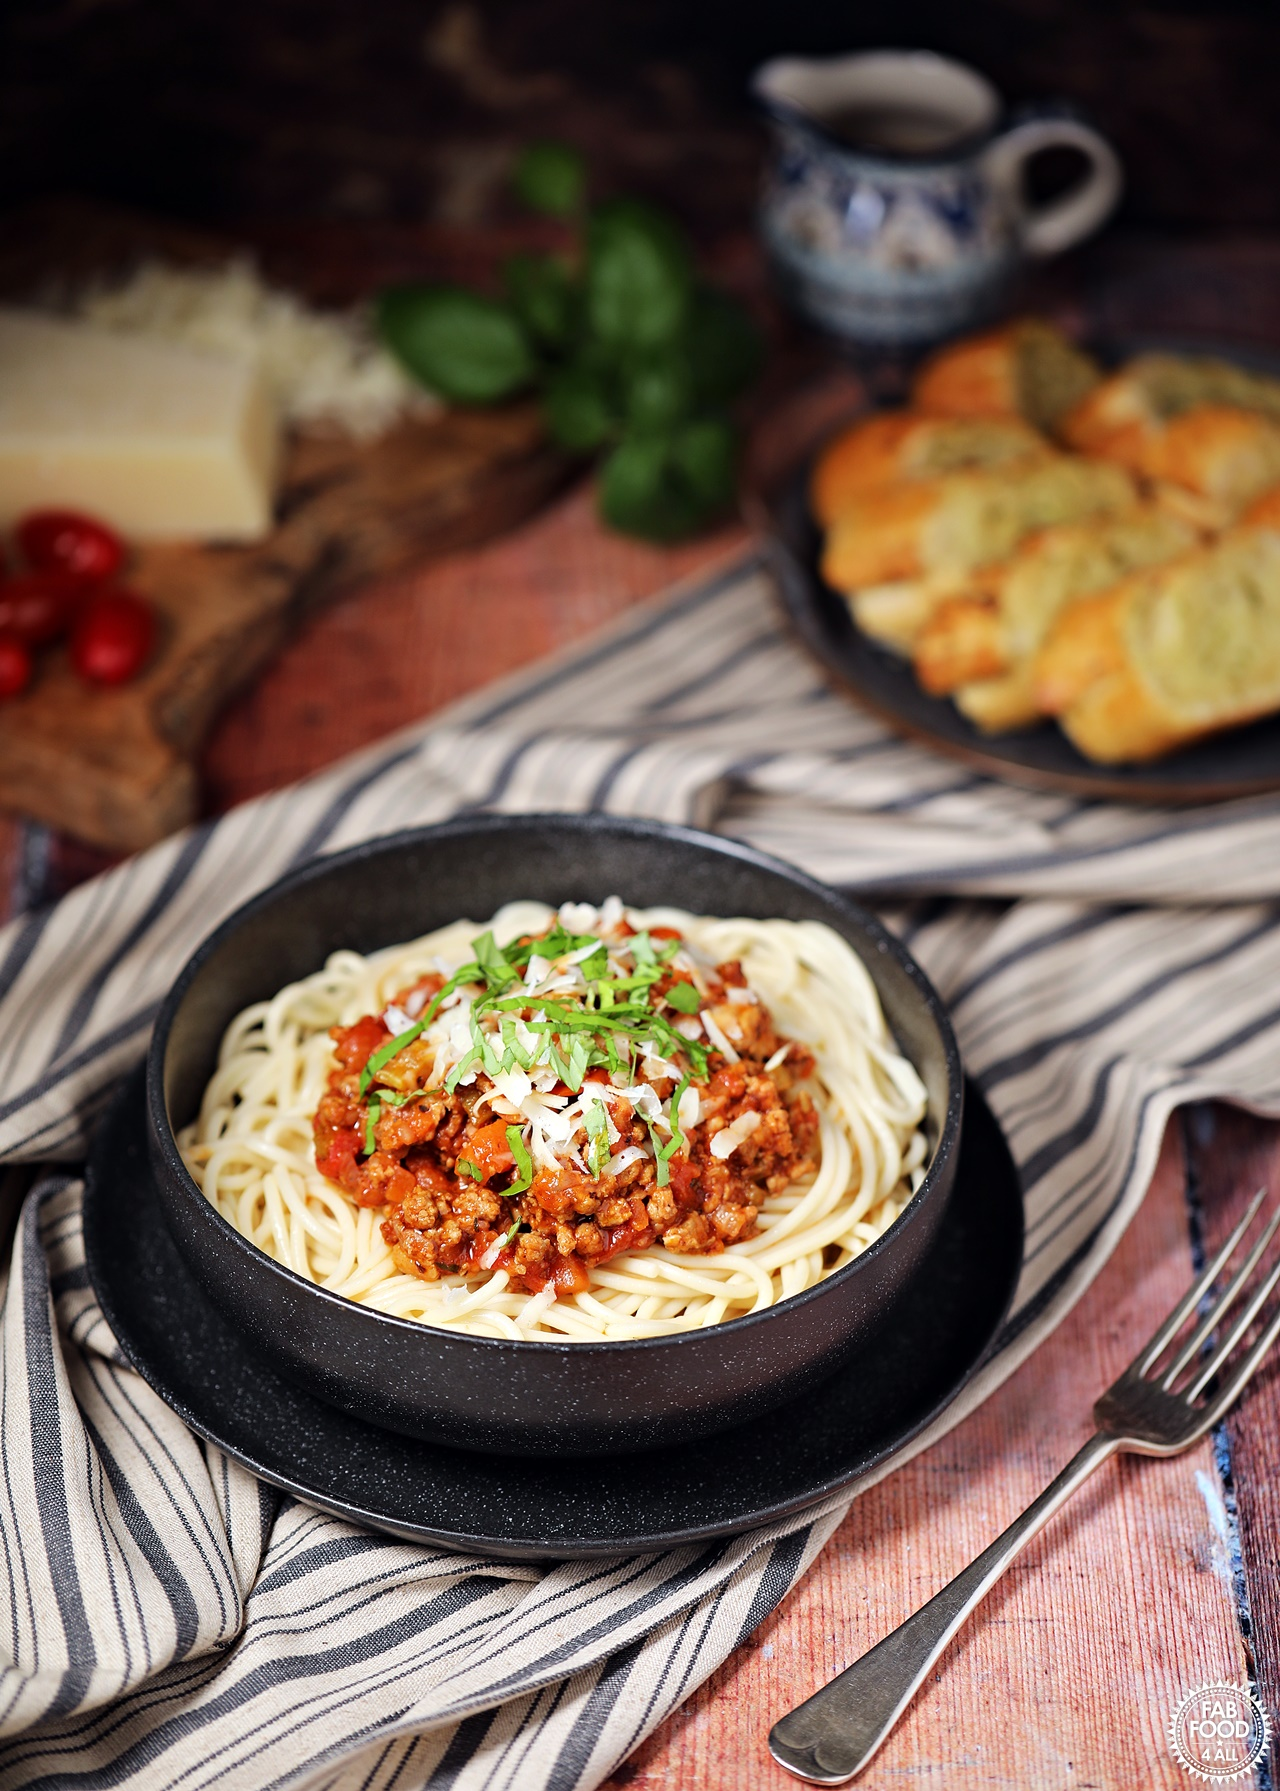 Turkey Bolognese in a bowl with spaghetti & grated parmesan with garlic bread & tomatoes in background.